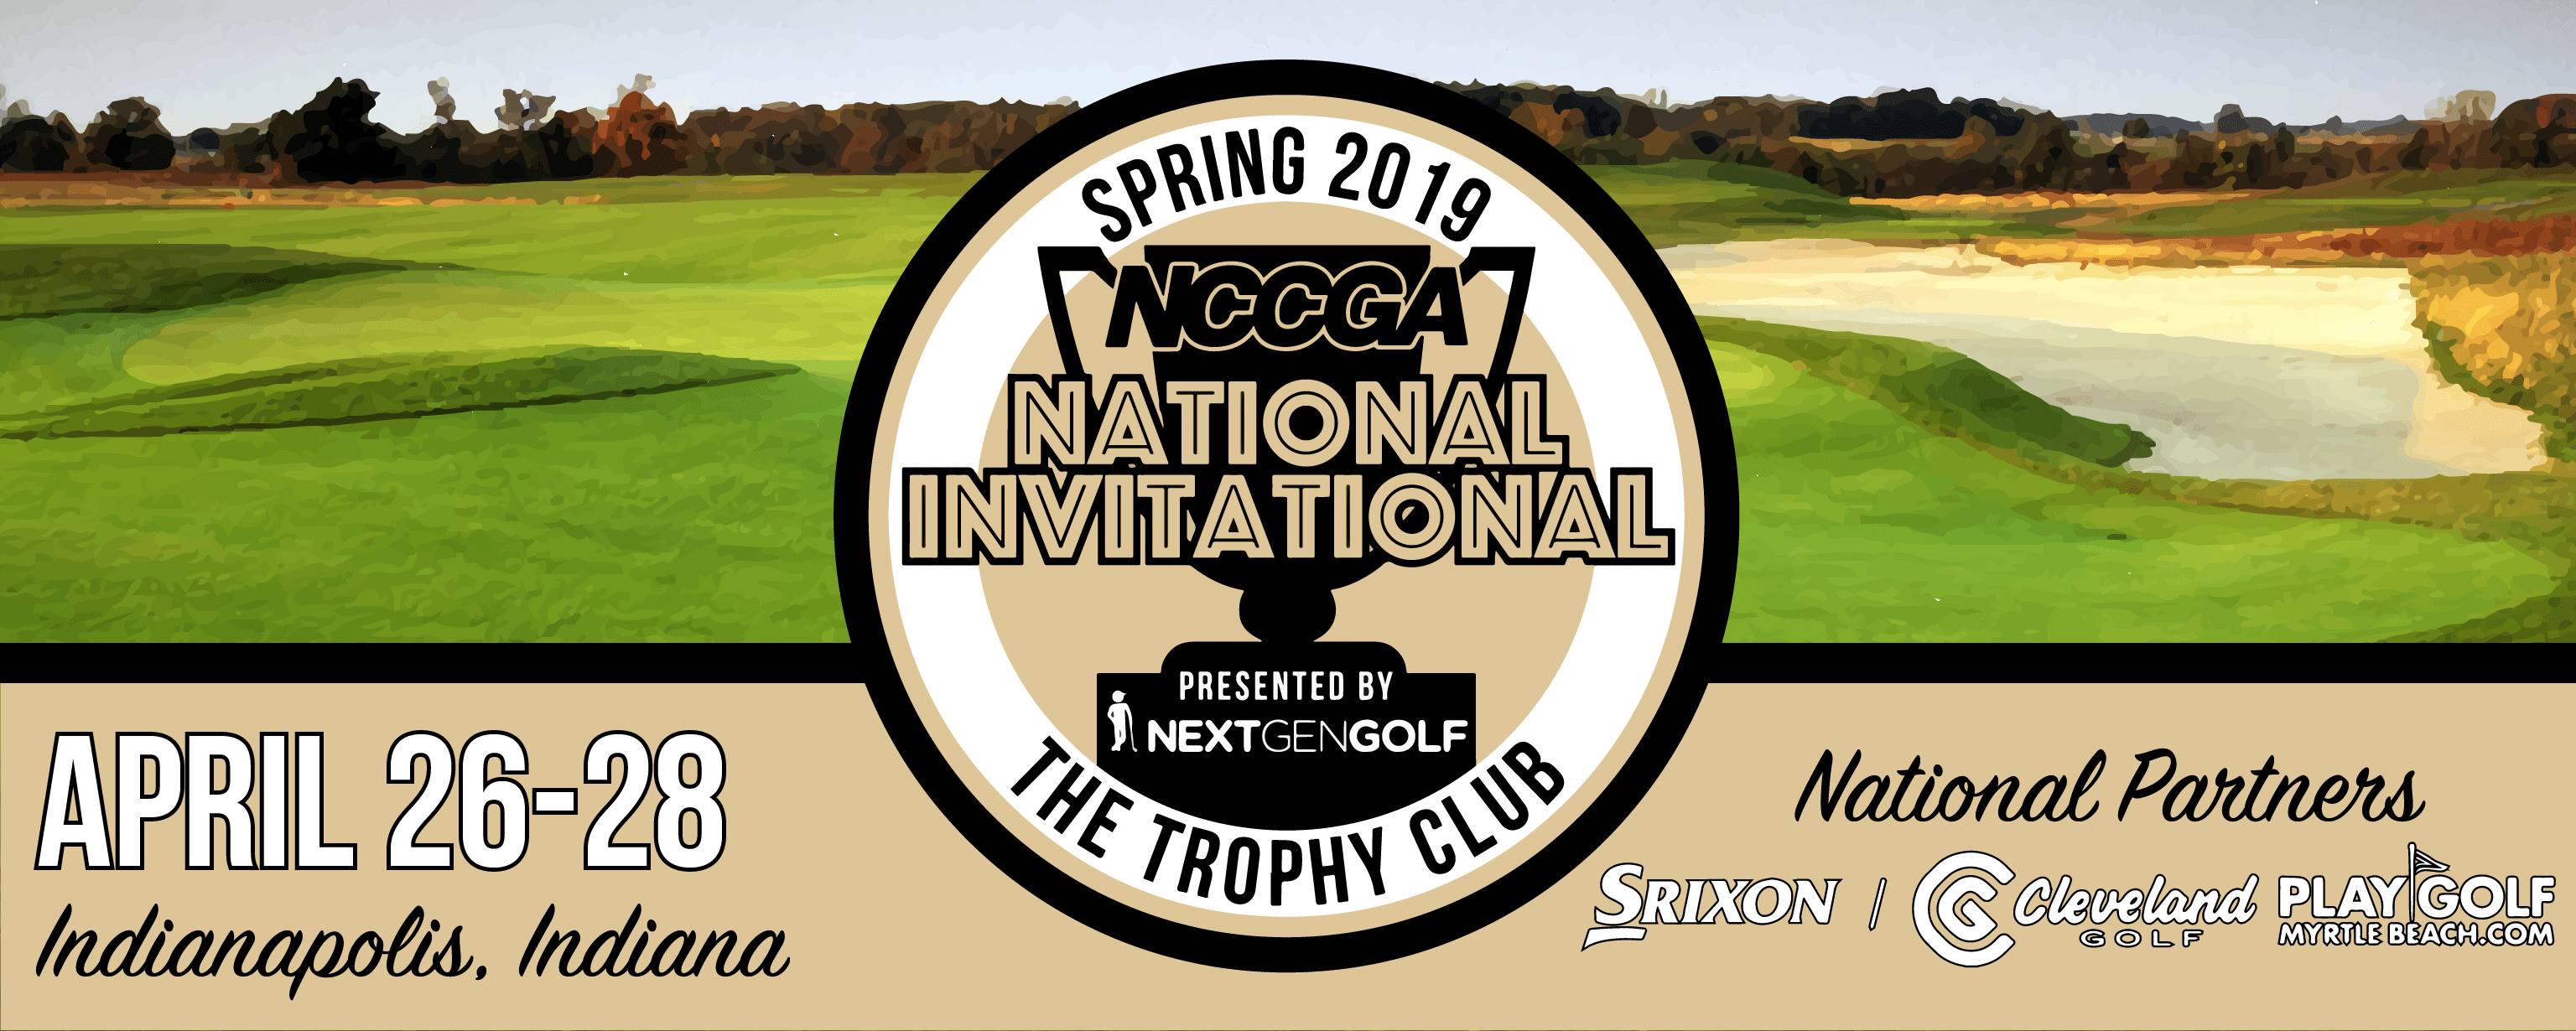 Spring 2019 NCCGA National Invitational